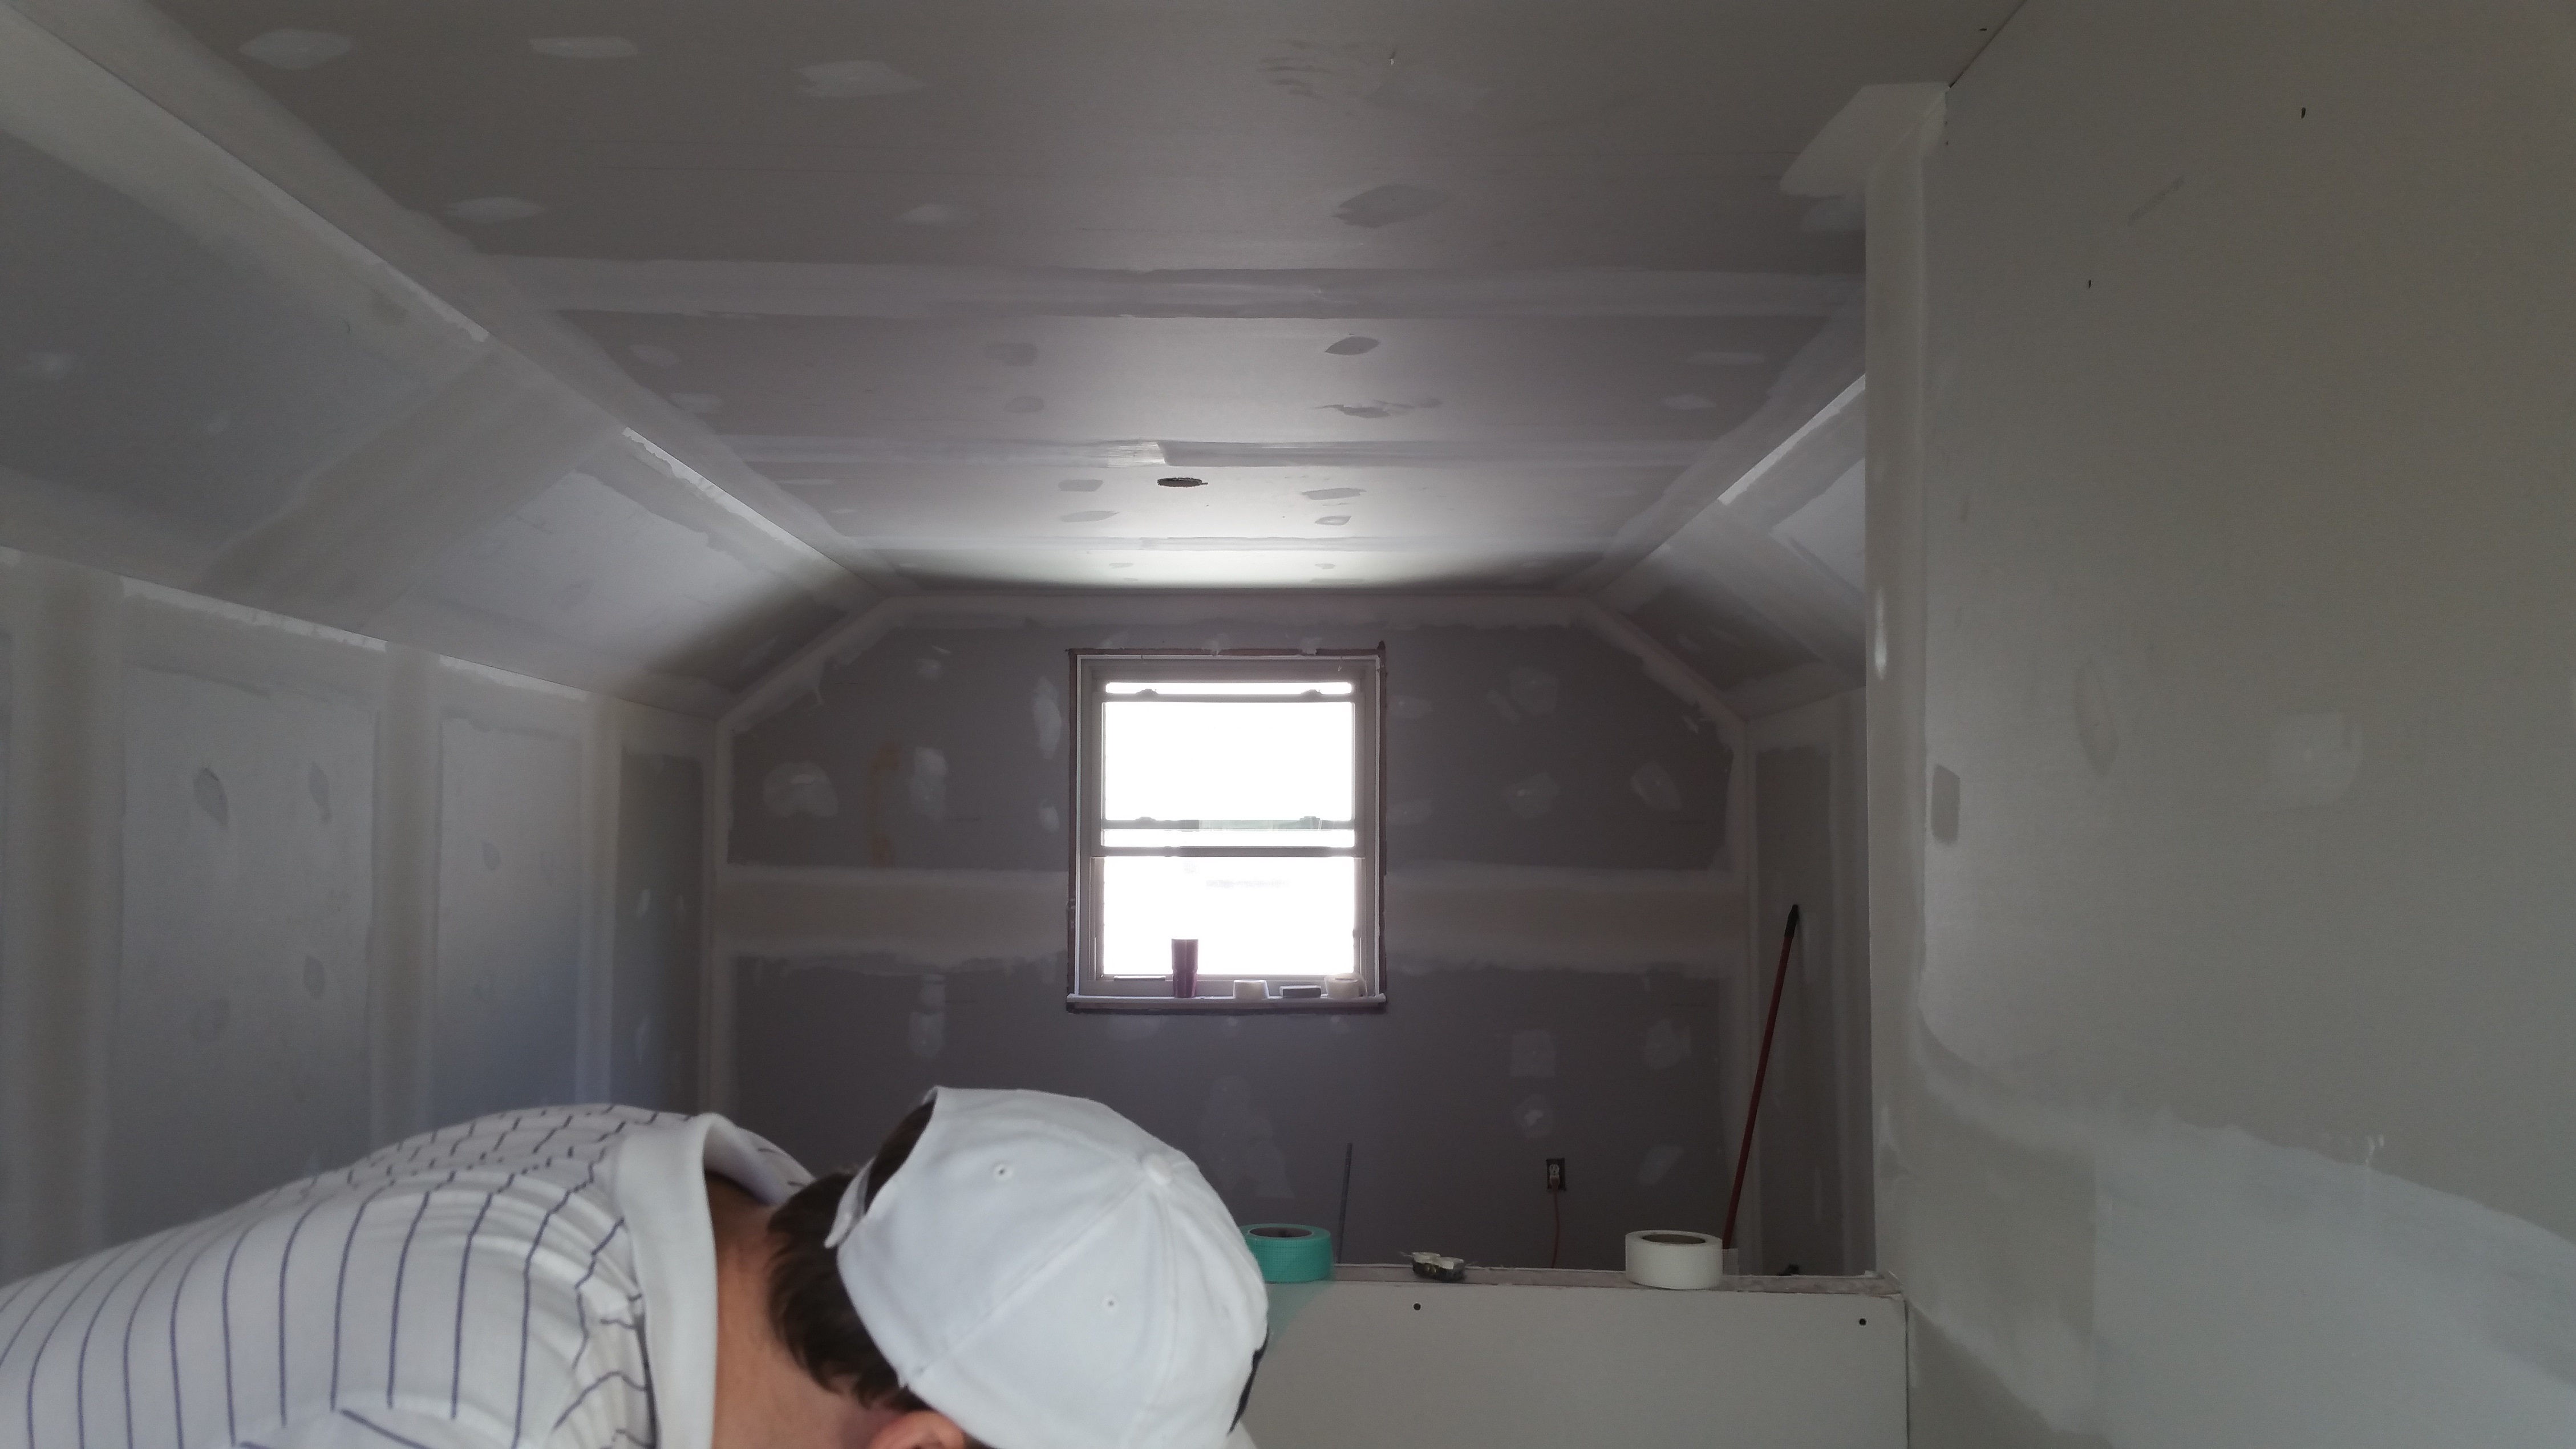 Upstairs Ceiling 3